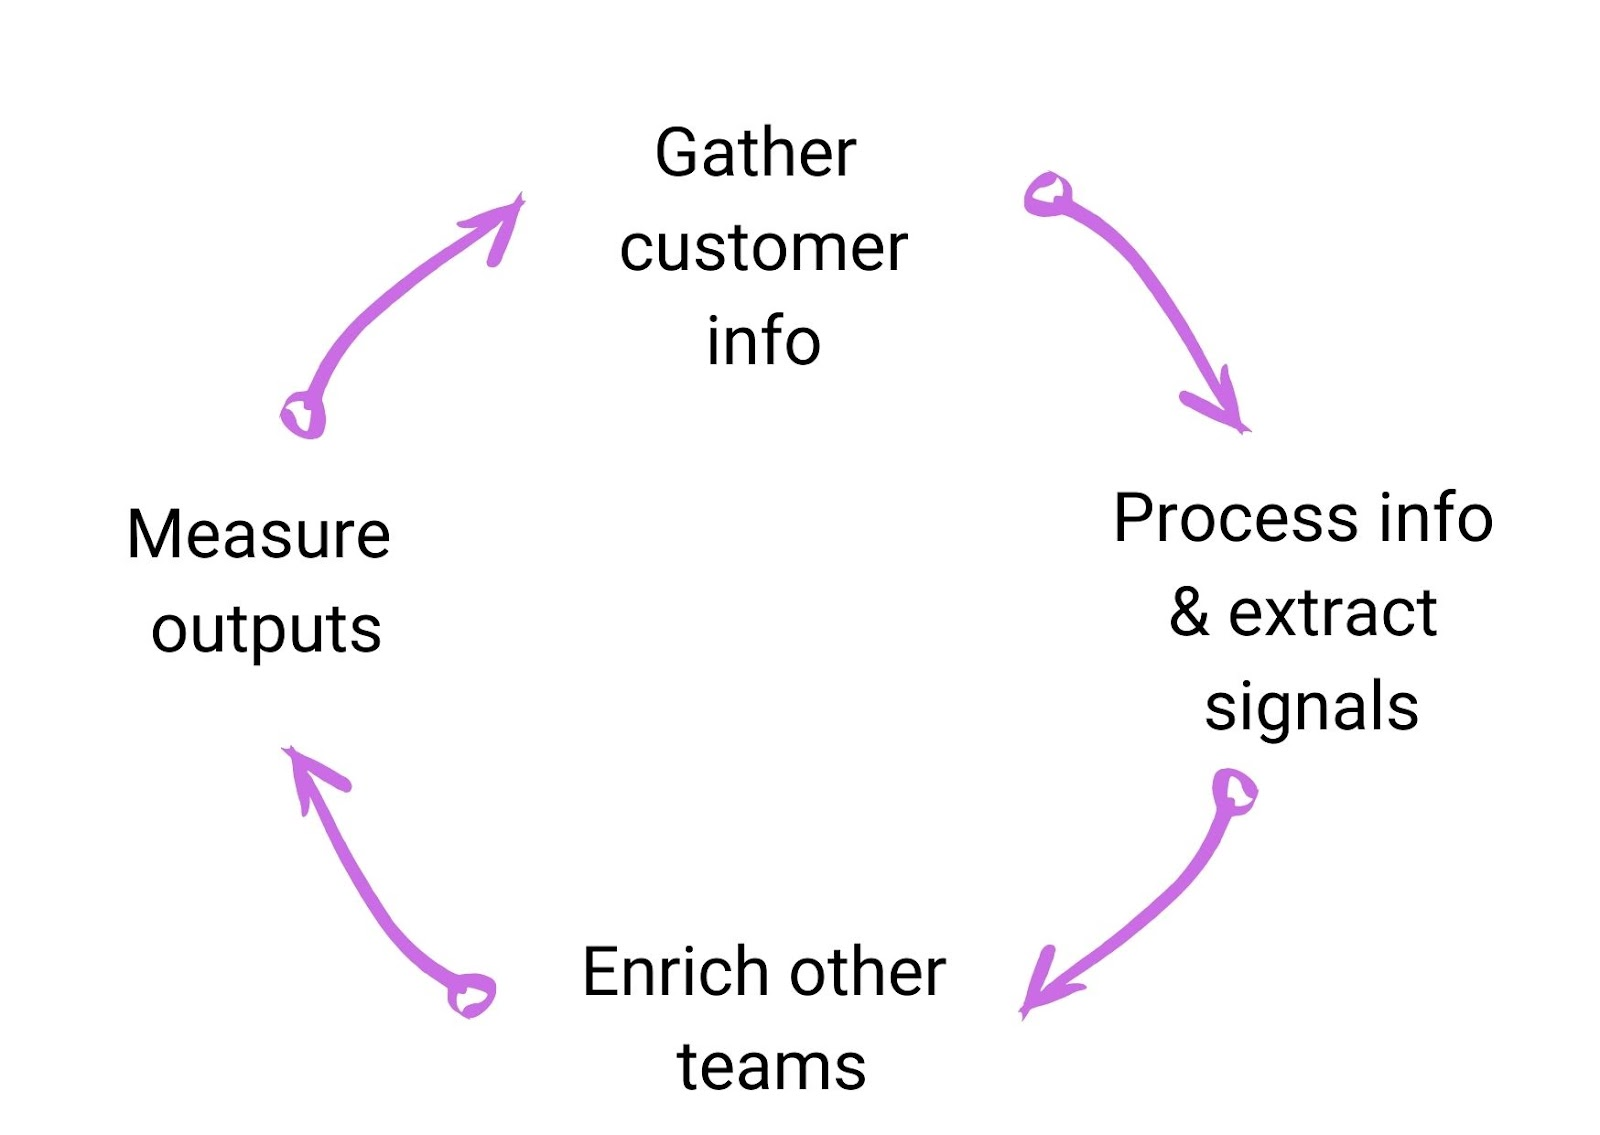 how customer success affects businesses: 3 signs you have a productive CS team